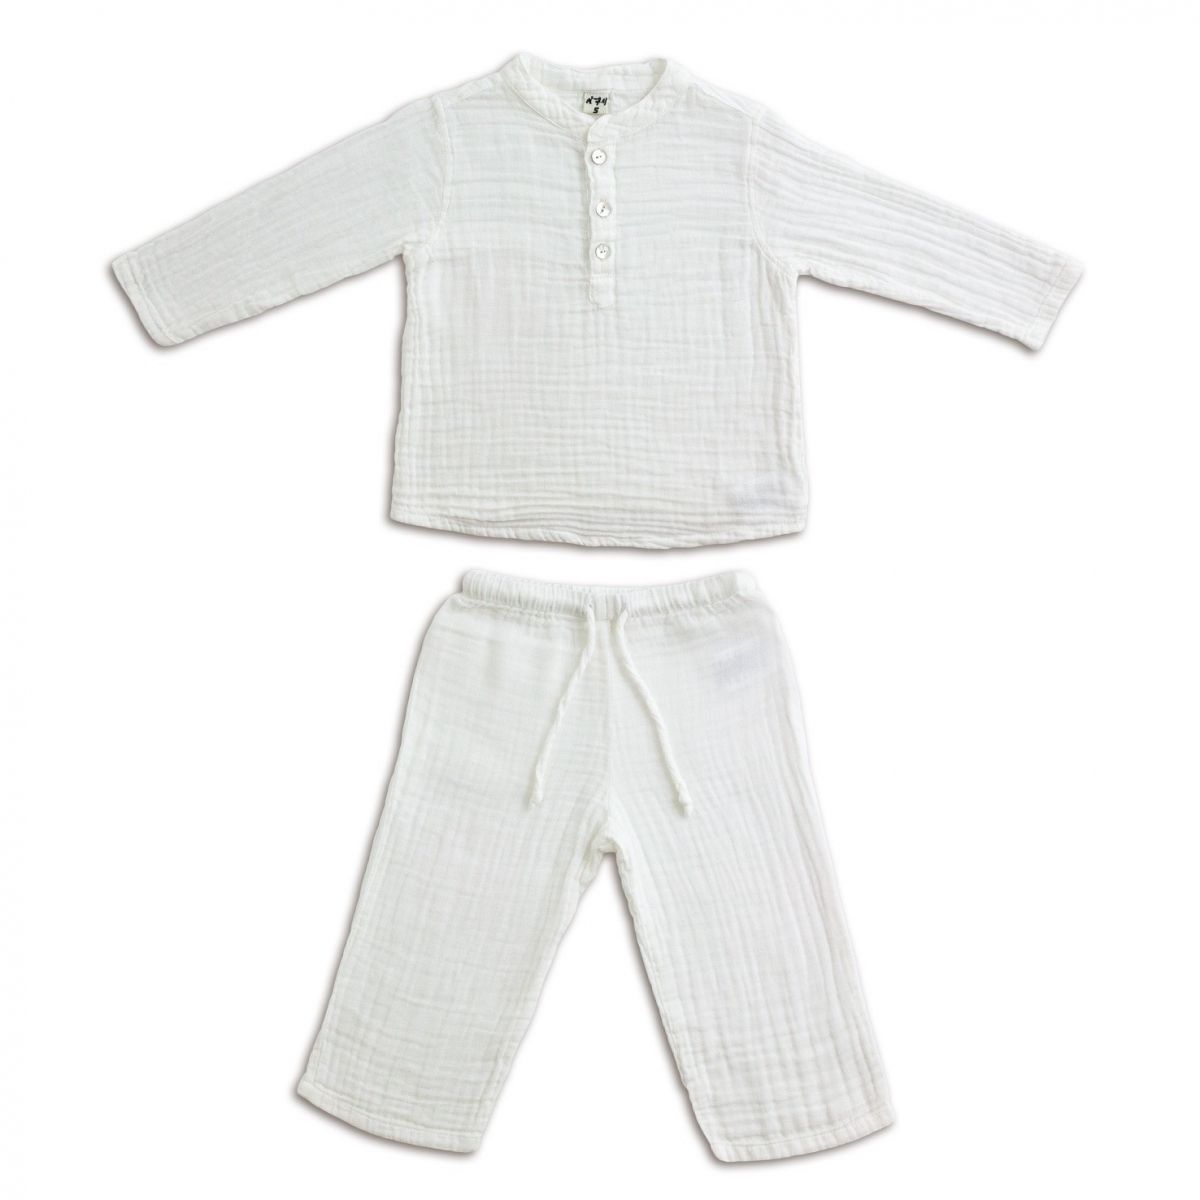 Suit Dan shirt & pants white - Numero 74